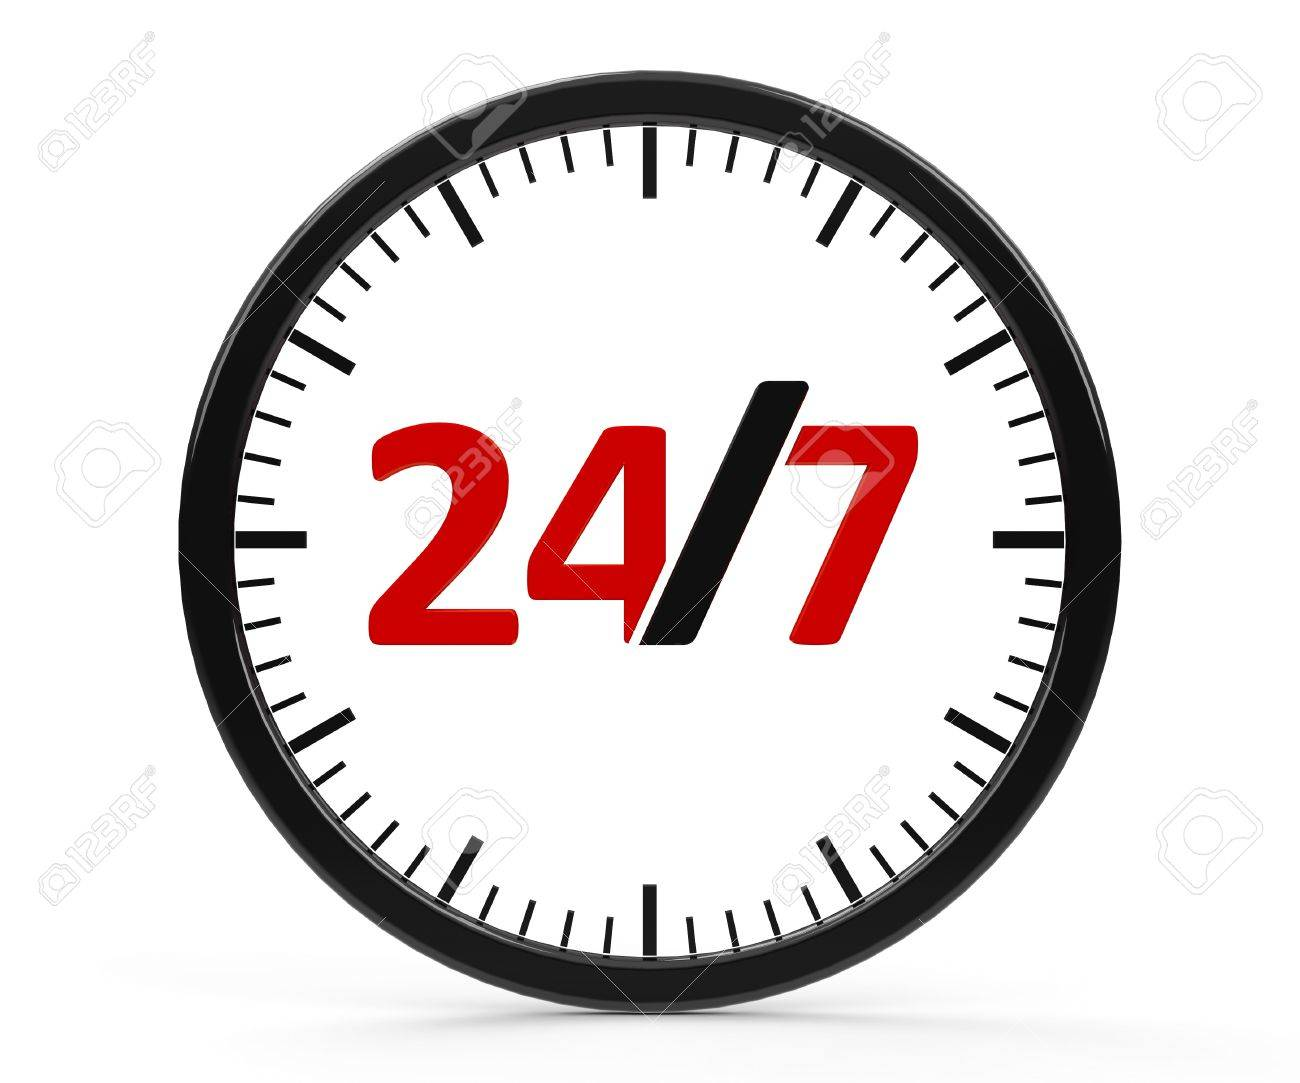 The logo of round-the-clock on white background represents 24 hours service, three-dimensional rendering Stock Photo - 18247733